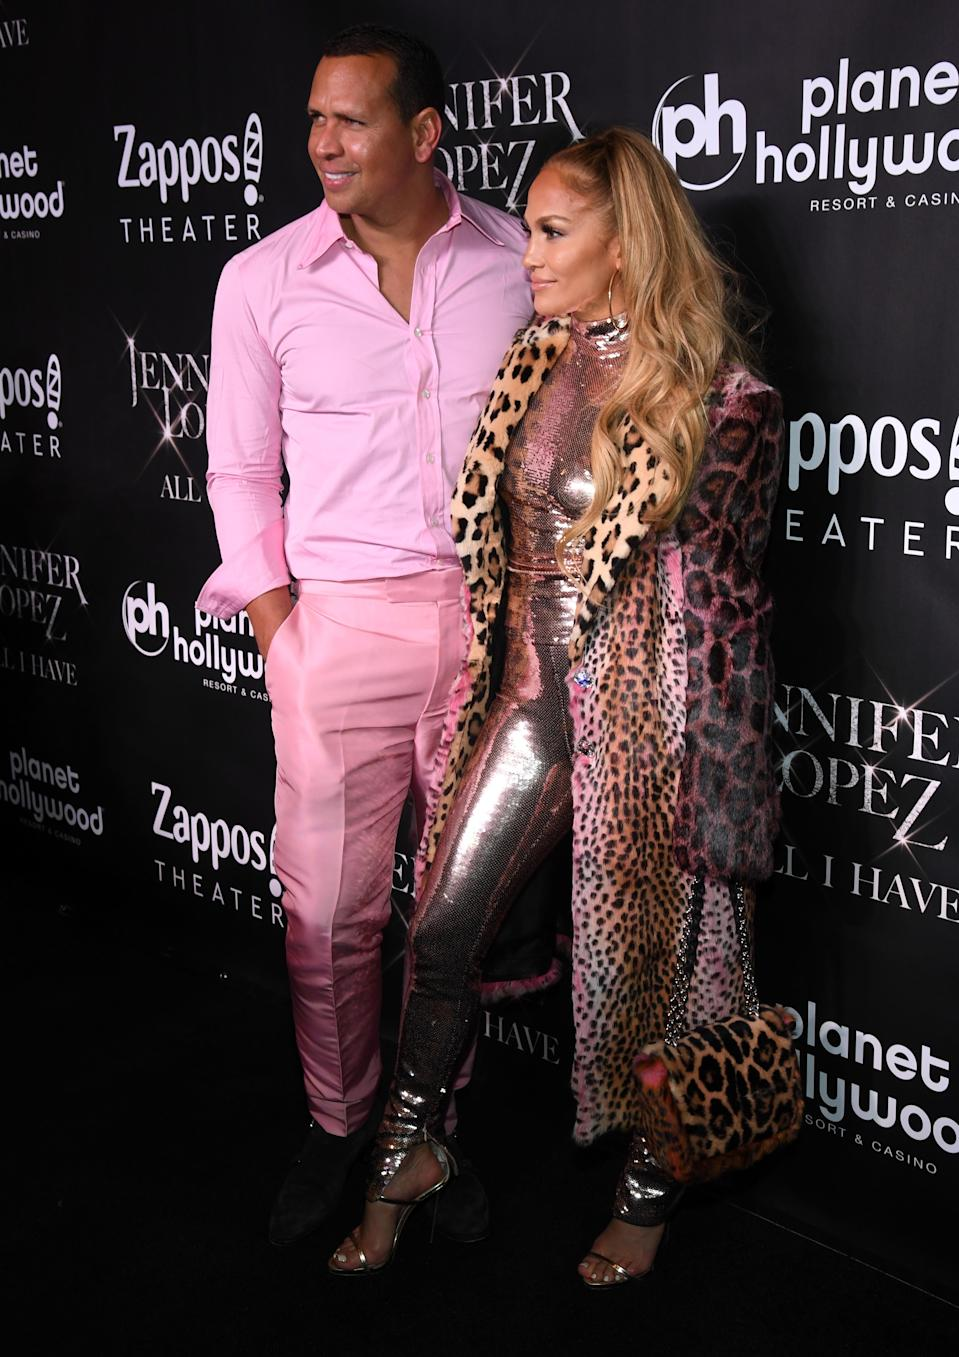 A-Rod stands out in an all-pink suit next to girlfriend J.Lo. (Photo: Getty Images)